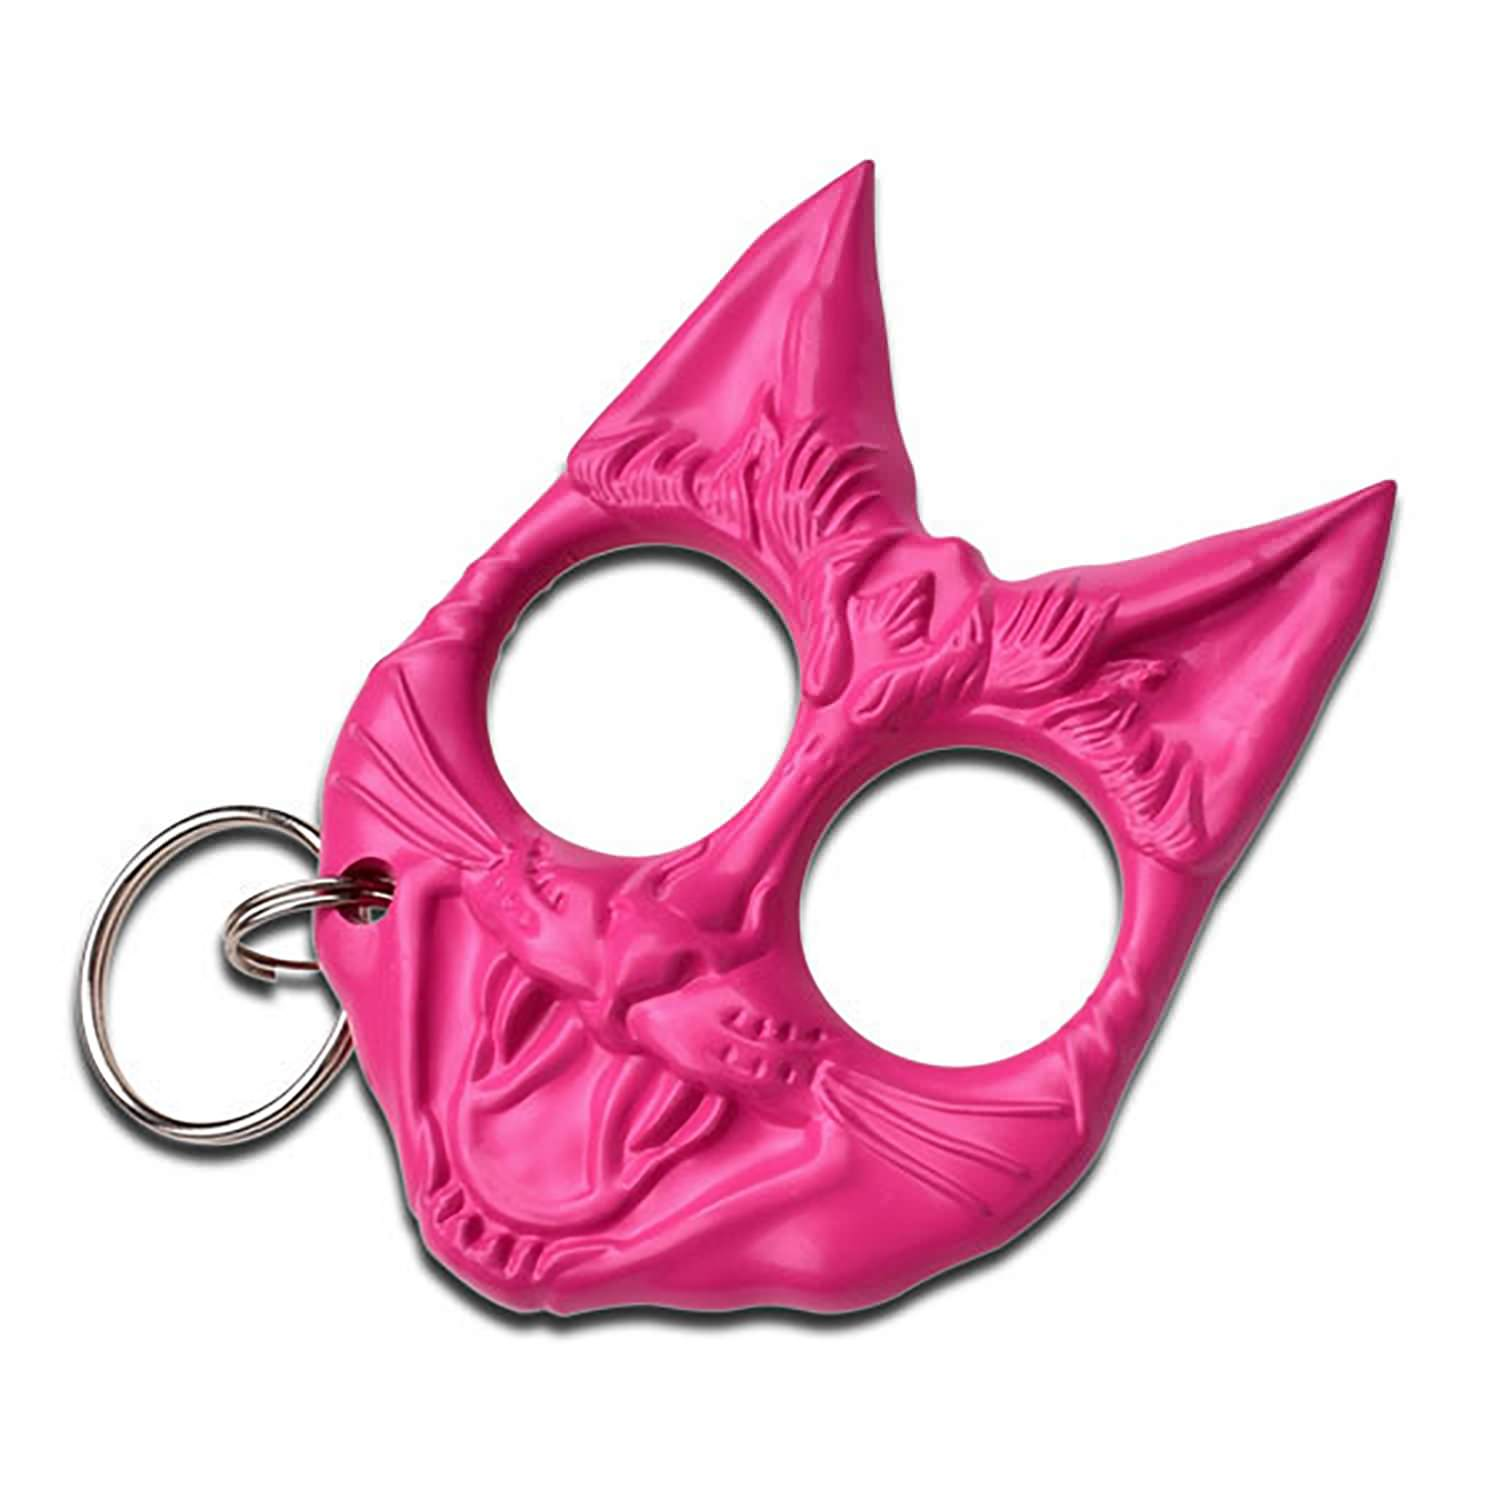 Wild Cat Self Defense Keychain Pink